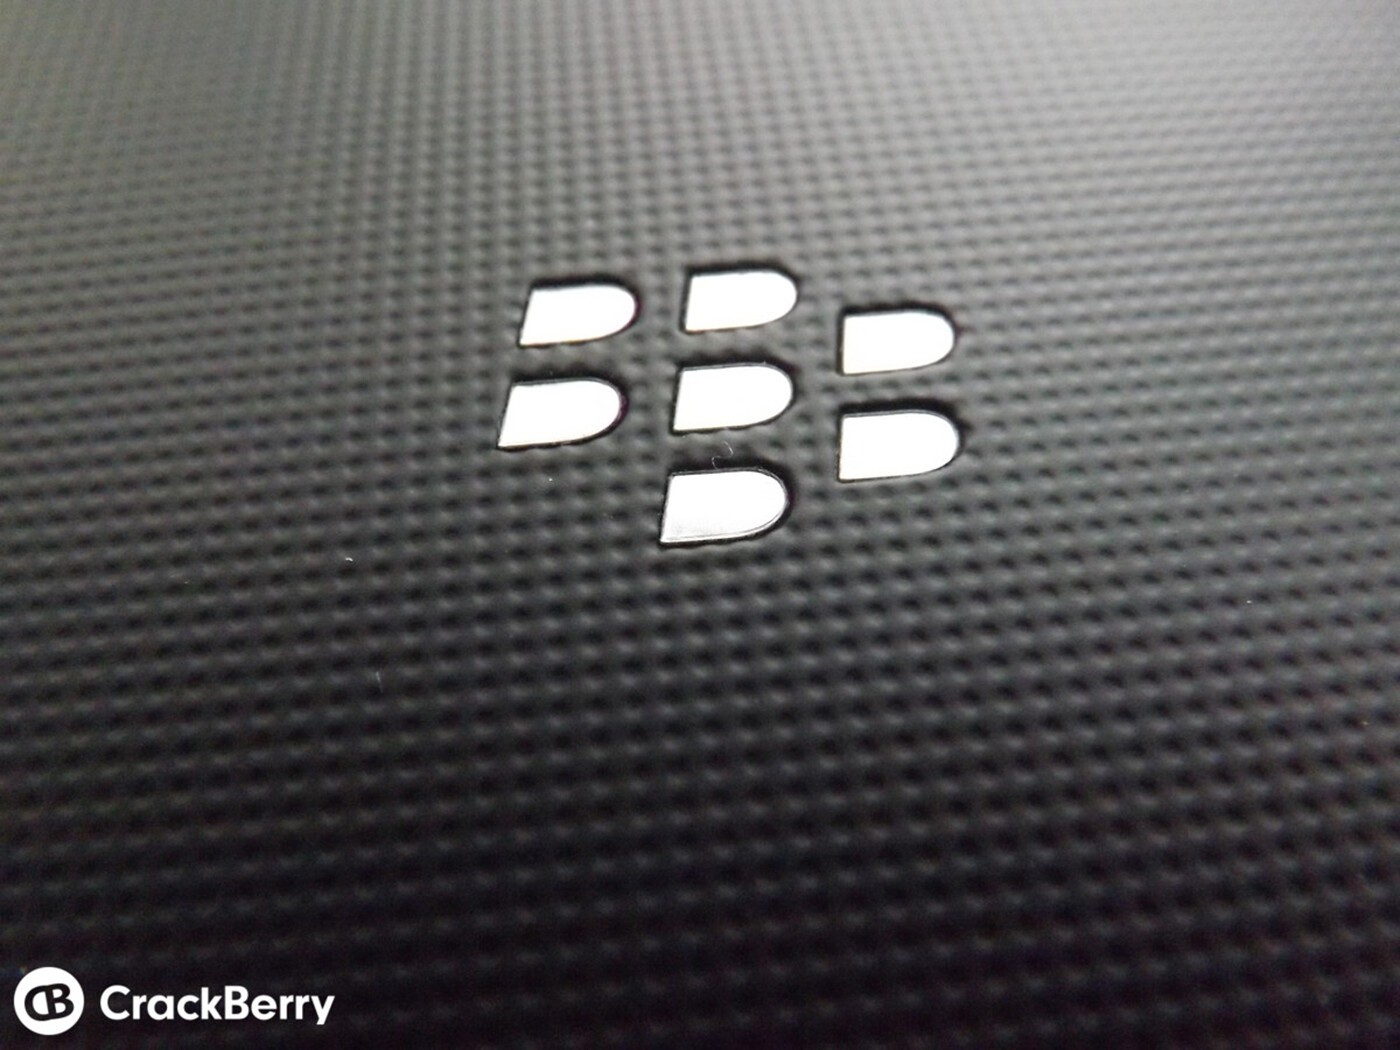 BlackBerry annual and special meeting webcast to be held on June 22